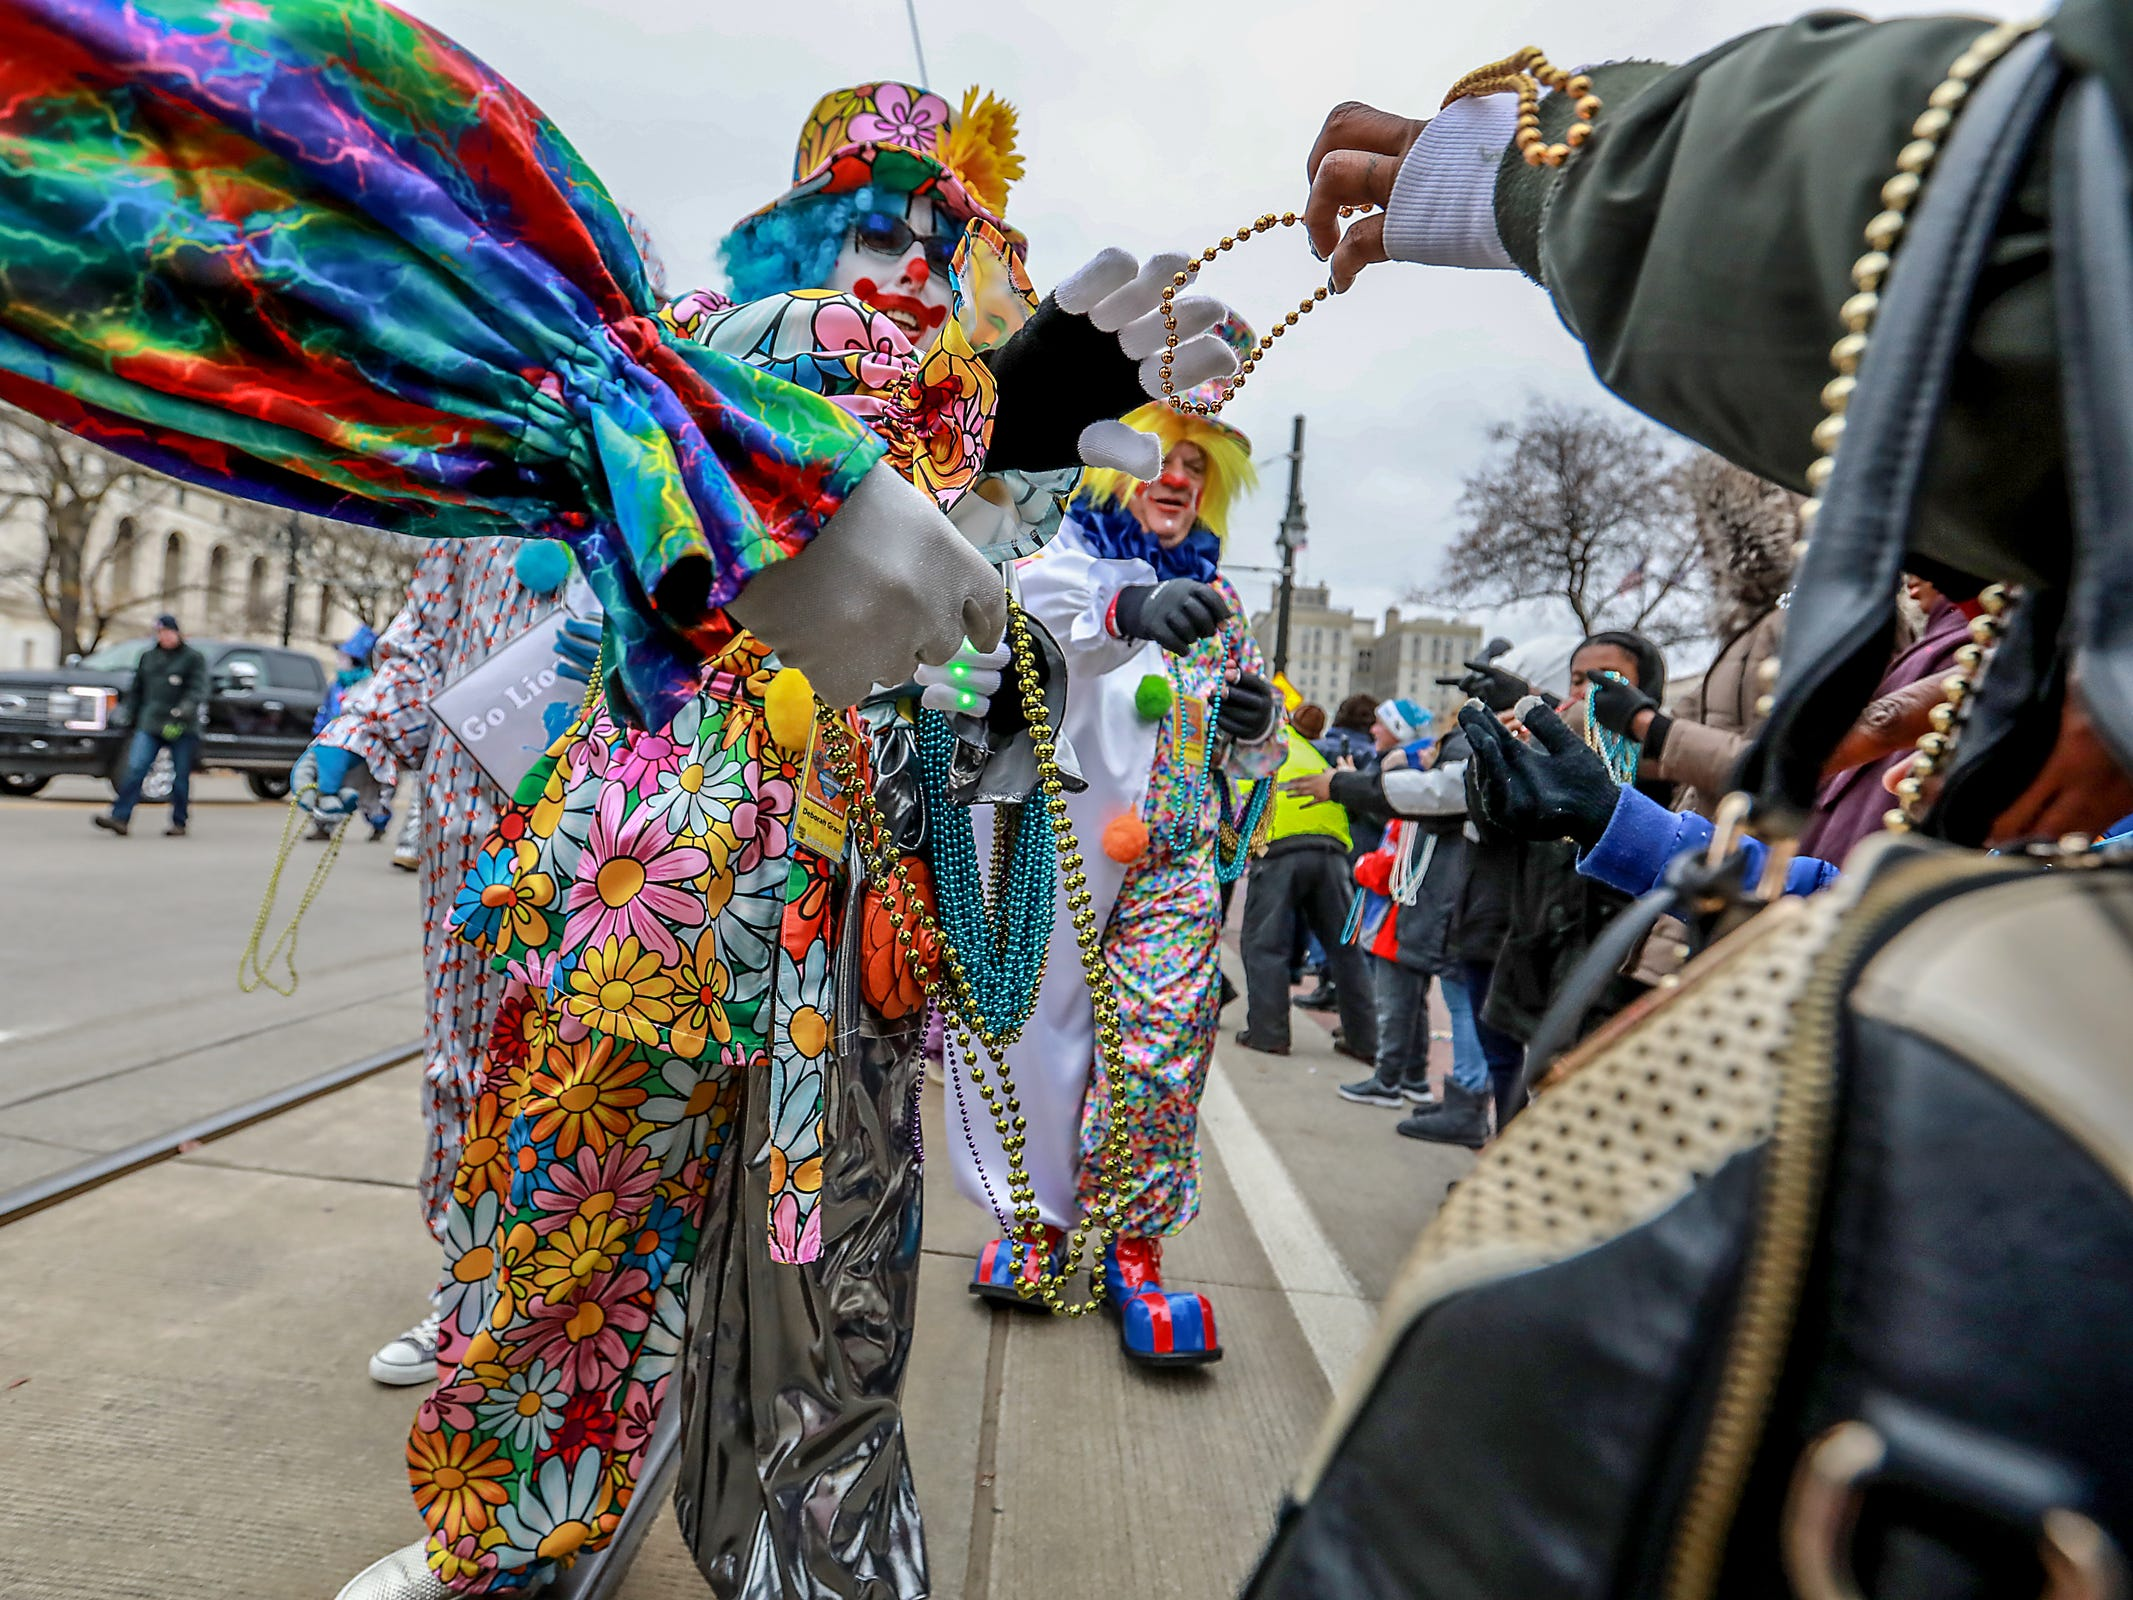 Distinguished Clown Corps members hand out beads to the crowd, during America's Thanksgiving Parade in Detroit on Thursday, Nov. 22, 2018.